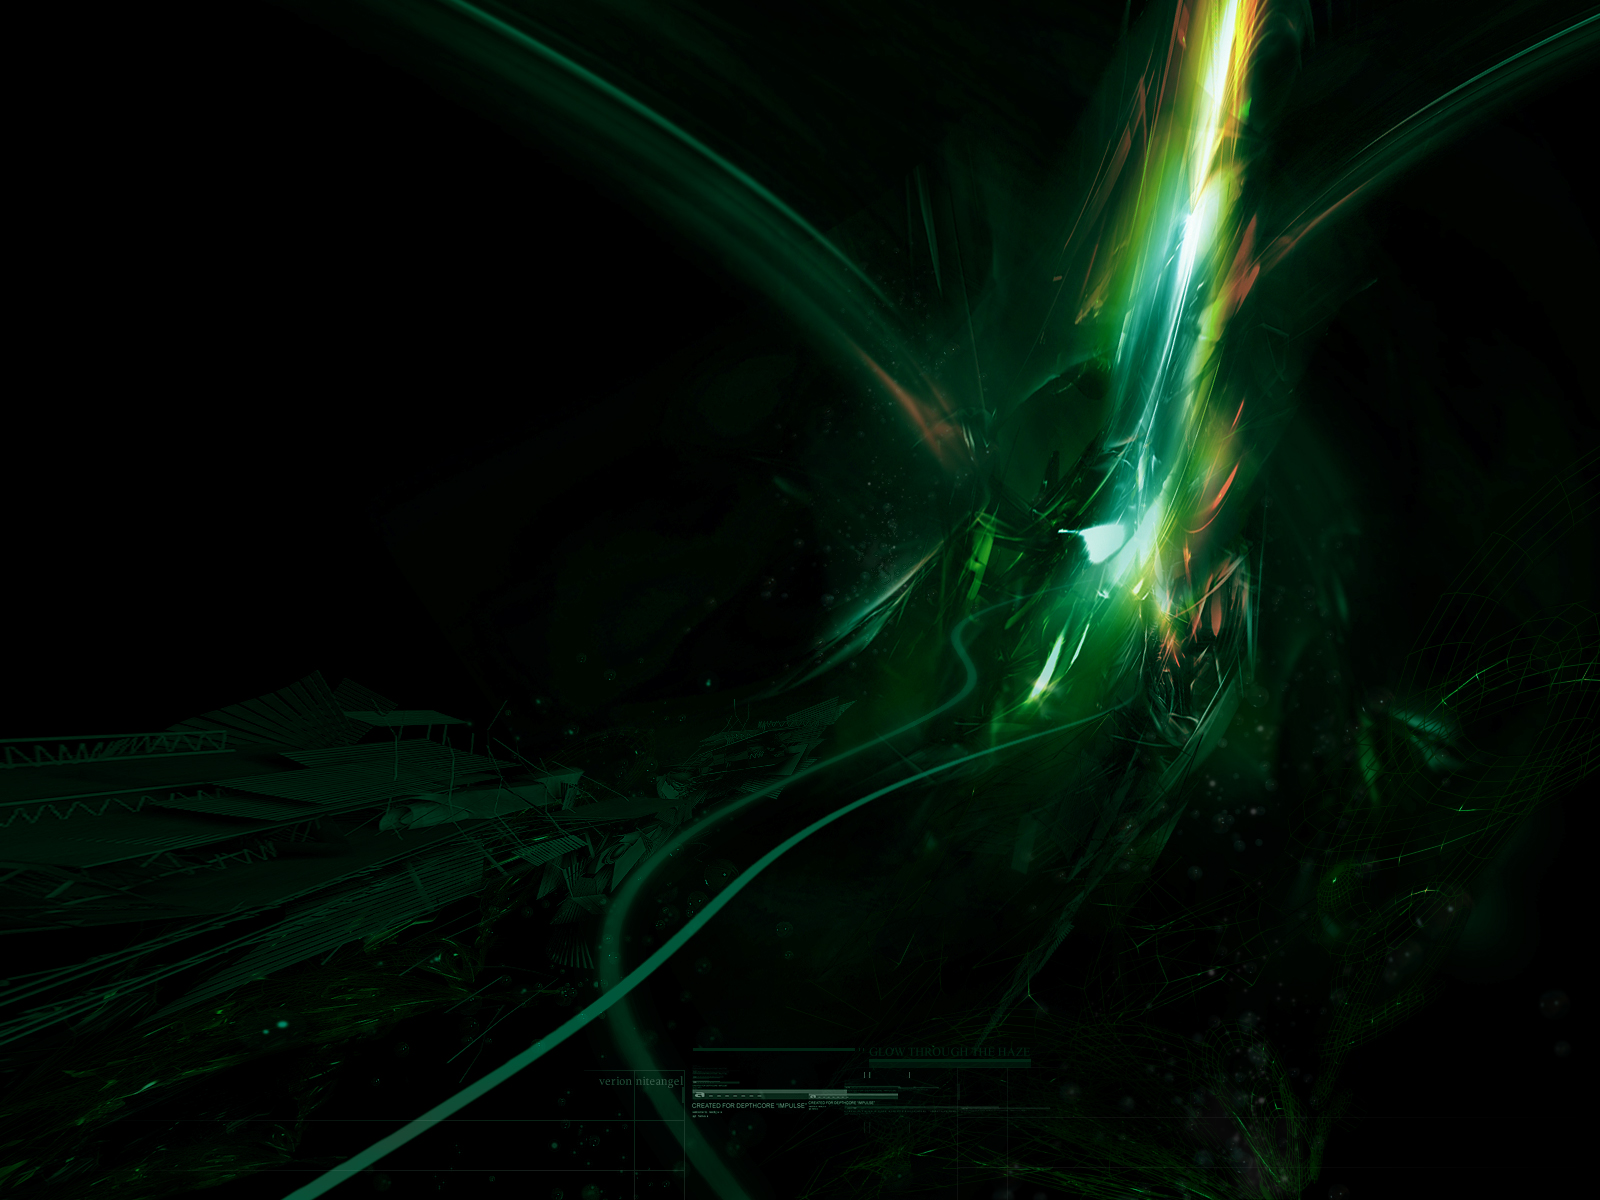 Dark Abstract Wallpapers Related Keywords amp Suggestions 1600x1200